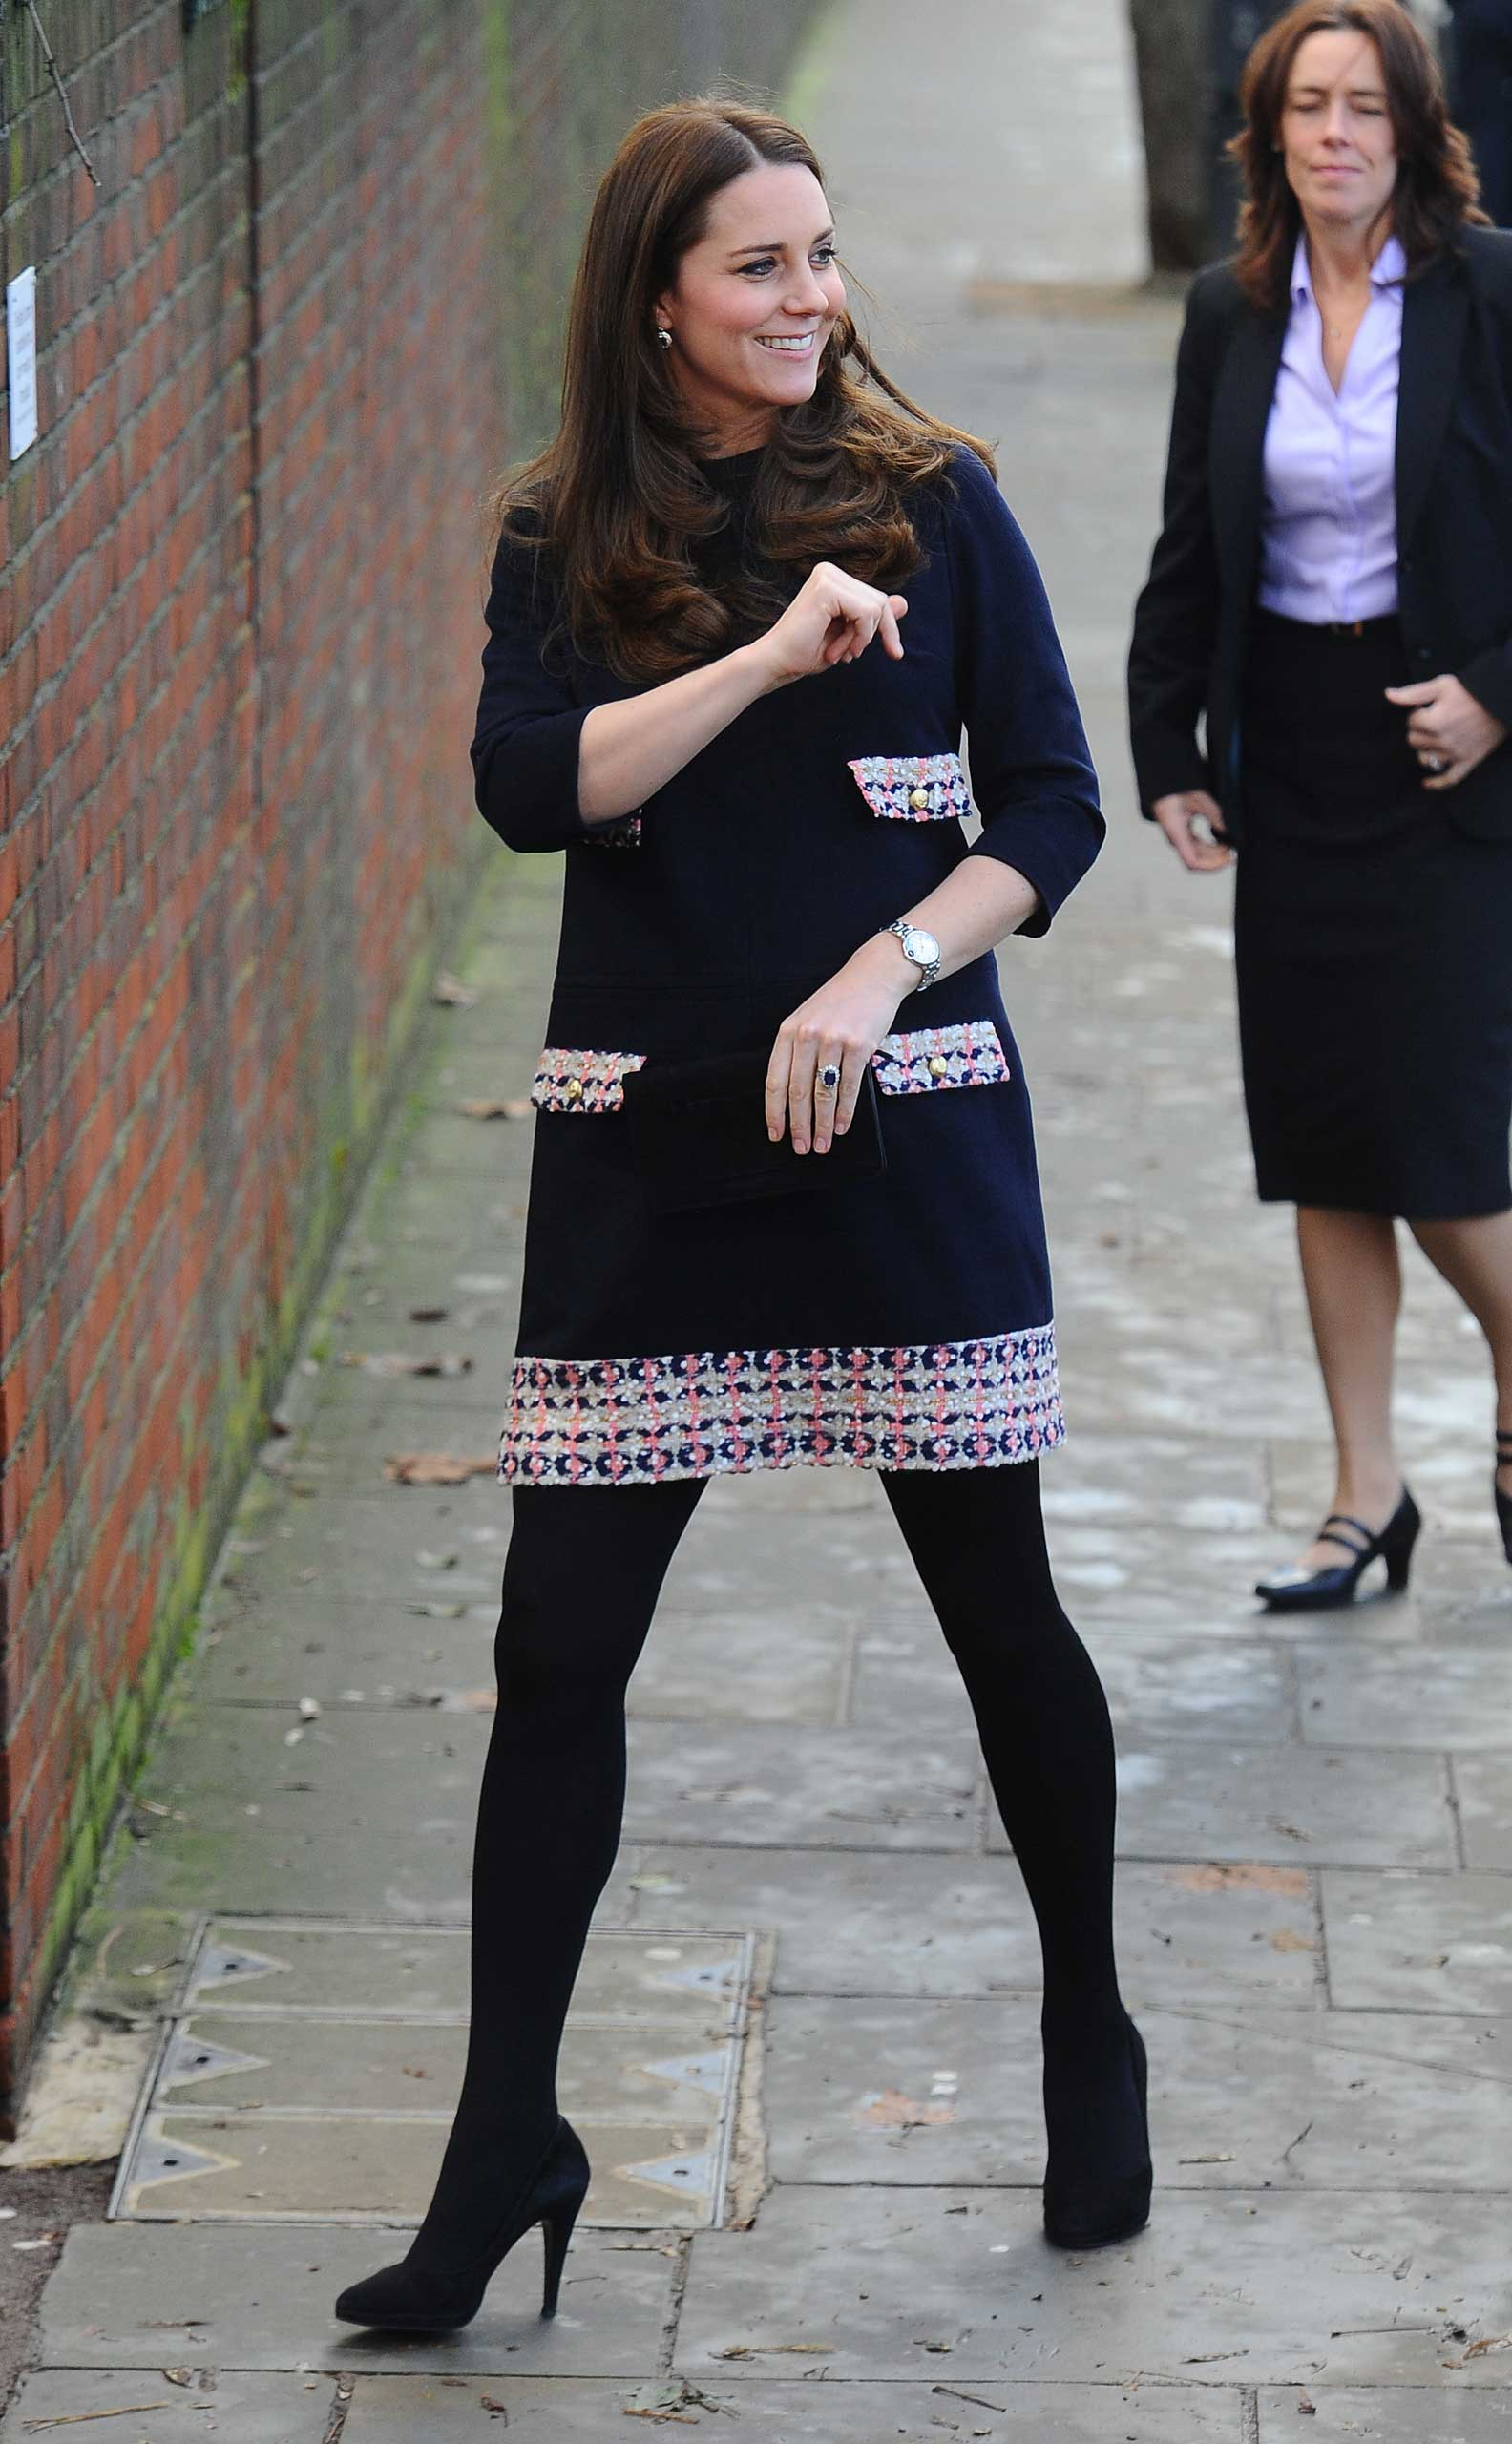 Catherine, Duchess of Cambridge seen arriving at the Barbly Primary School in West London on Jan. 15, 2014.